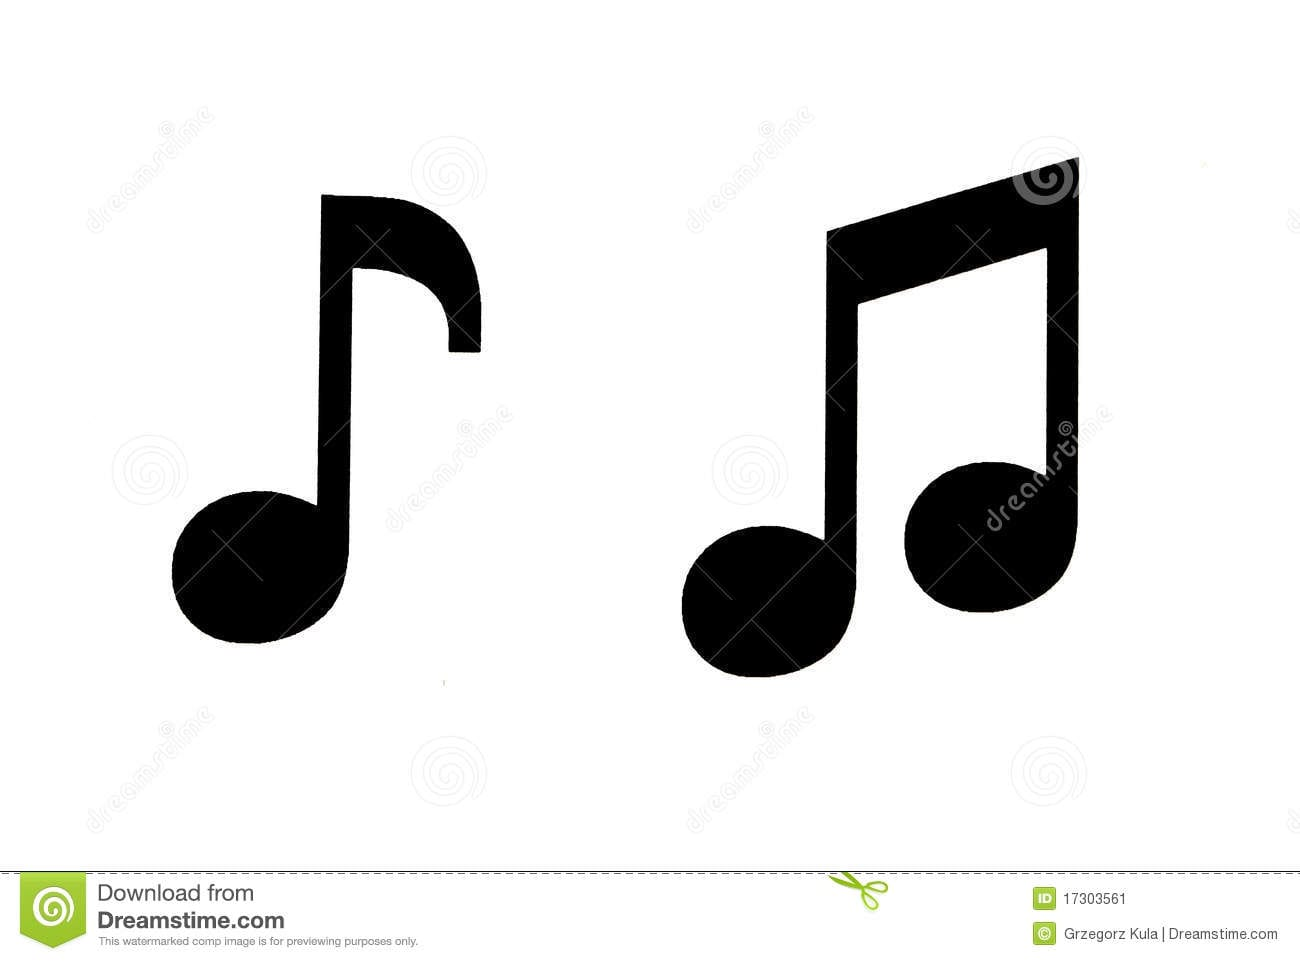 image relating to Printable Music Notes Symbols named Printable Audio Notes Symbols